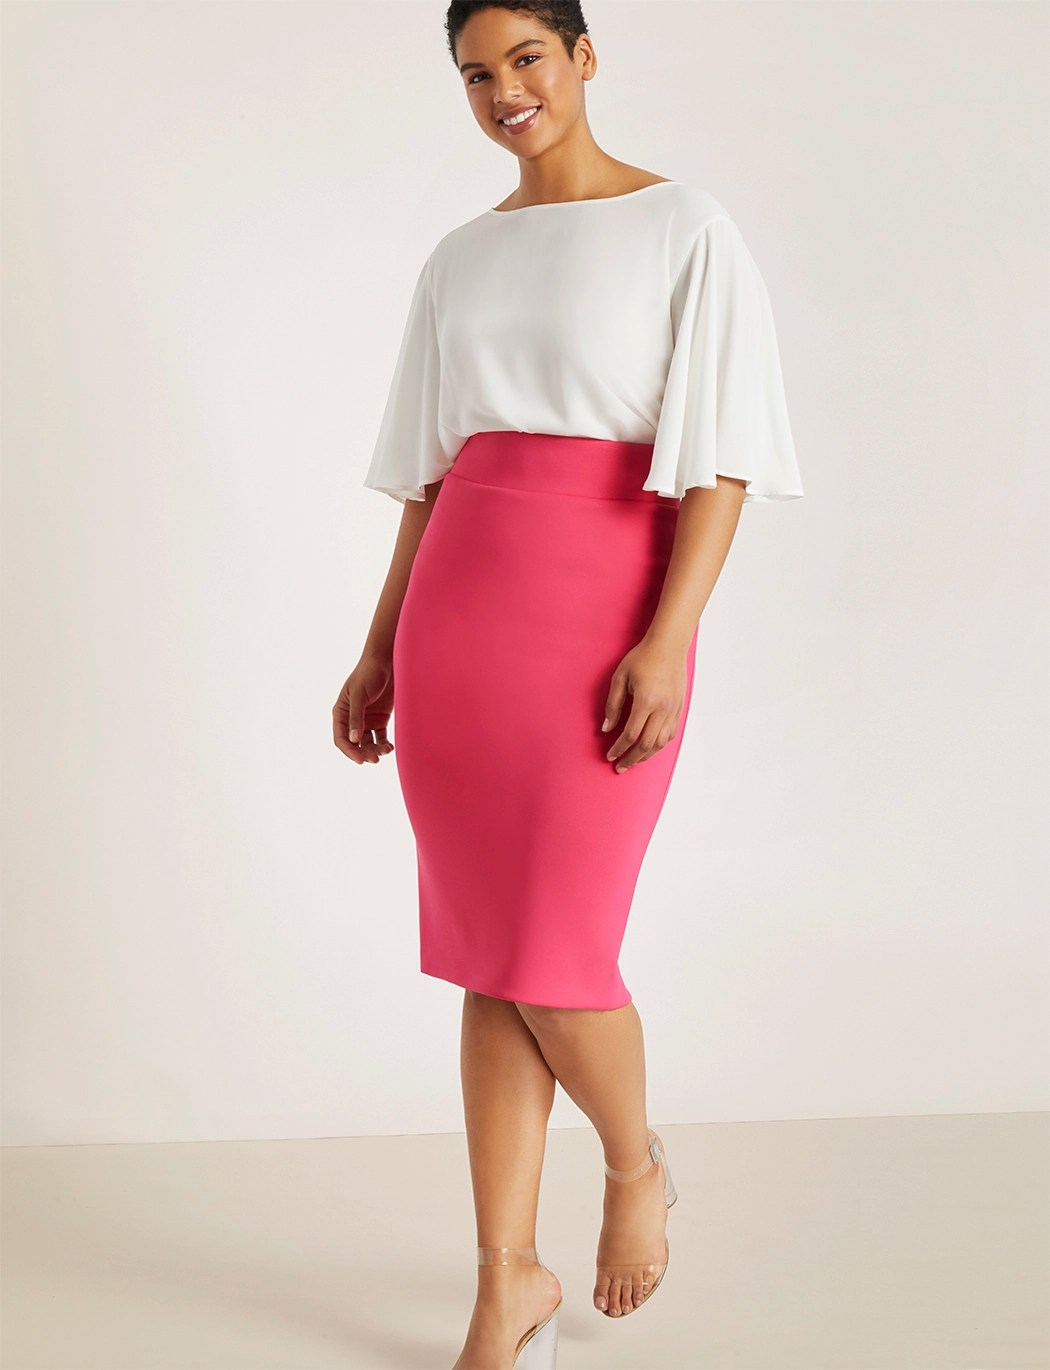 Neoprene Pencil Skirt 6